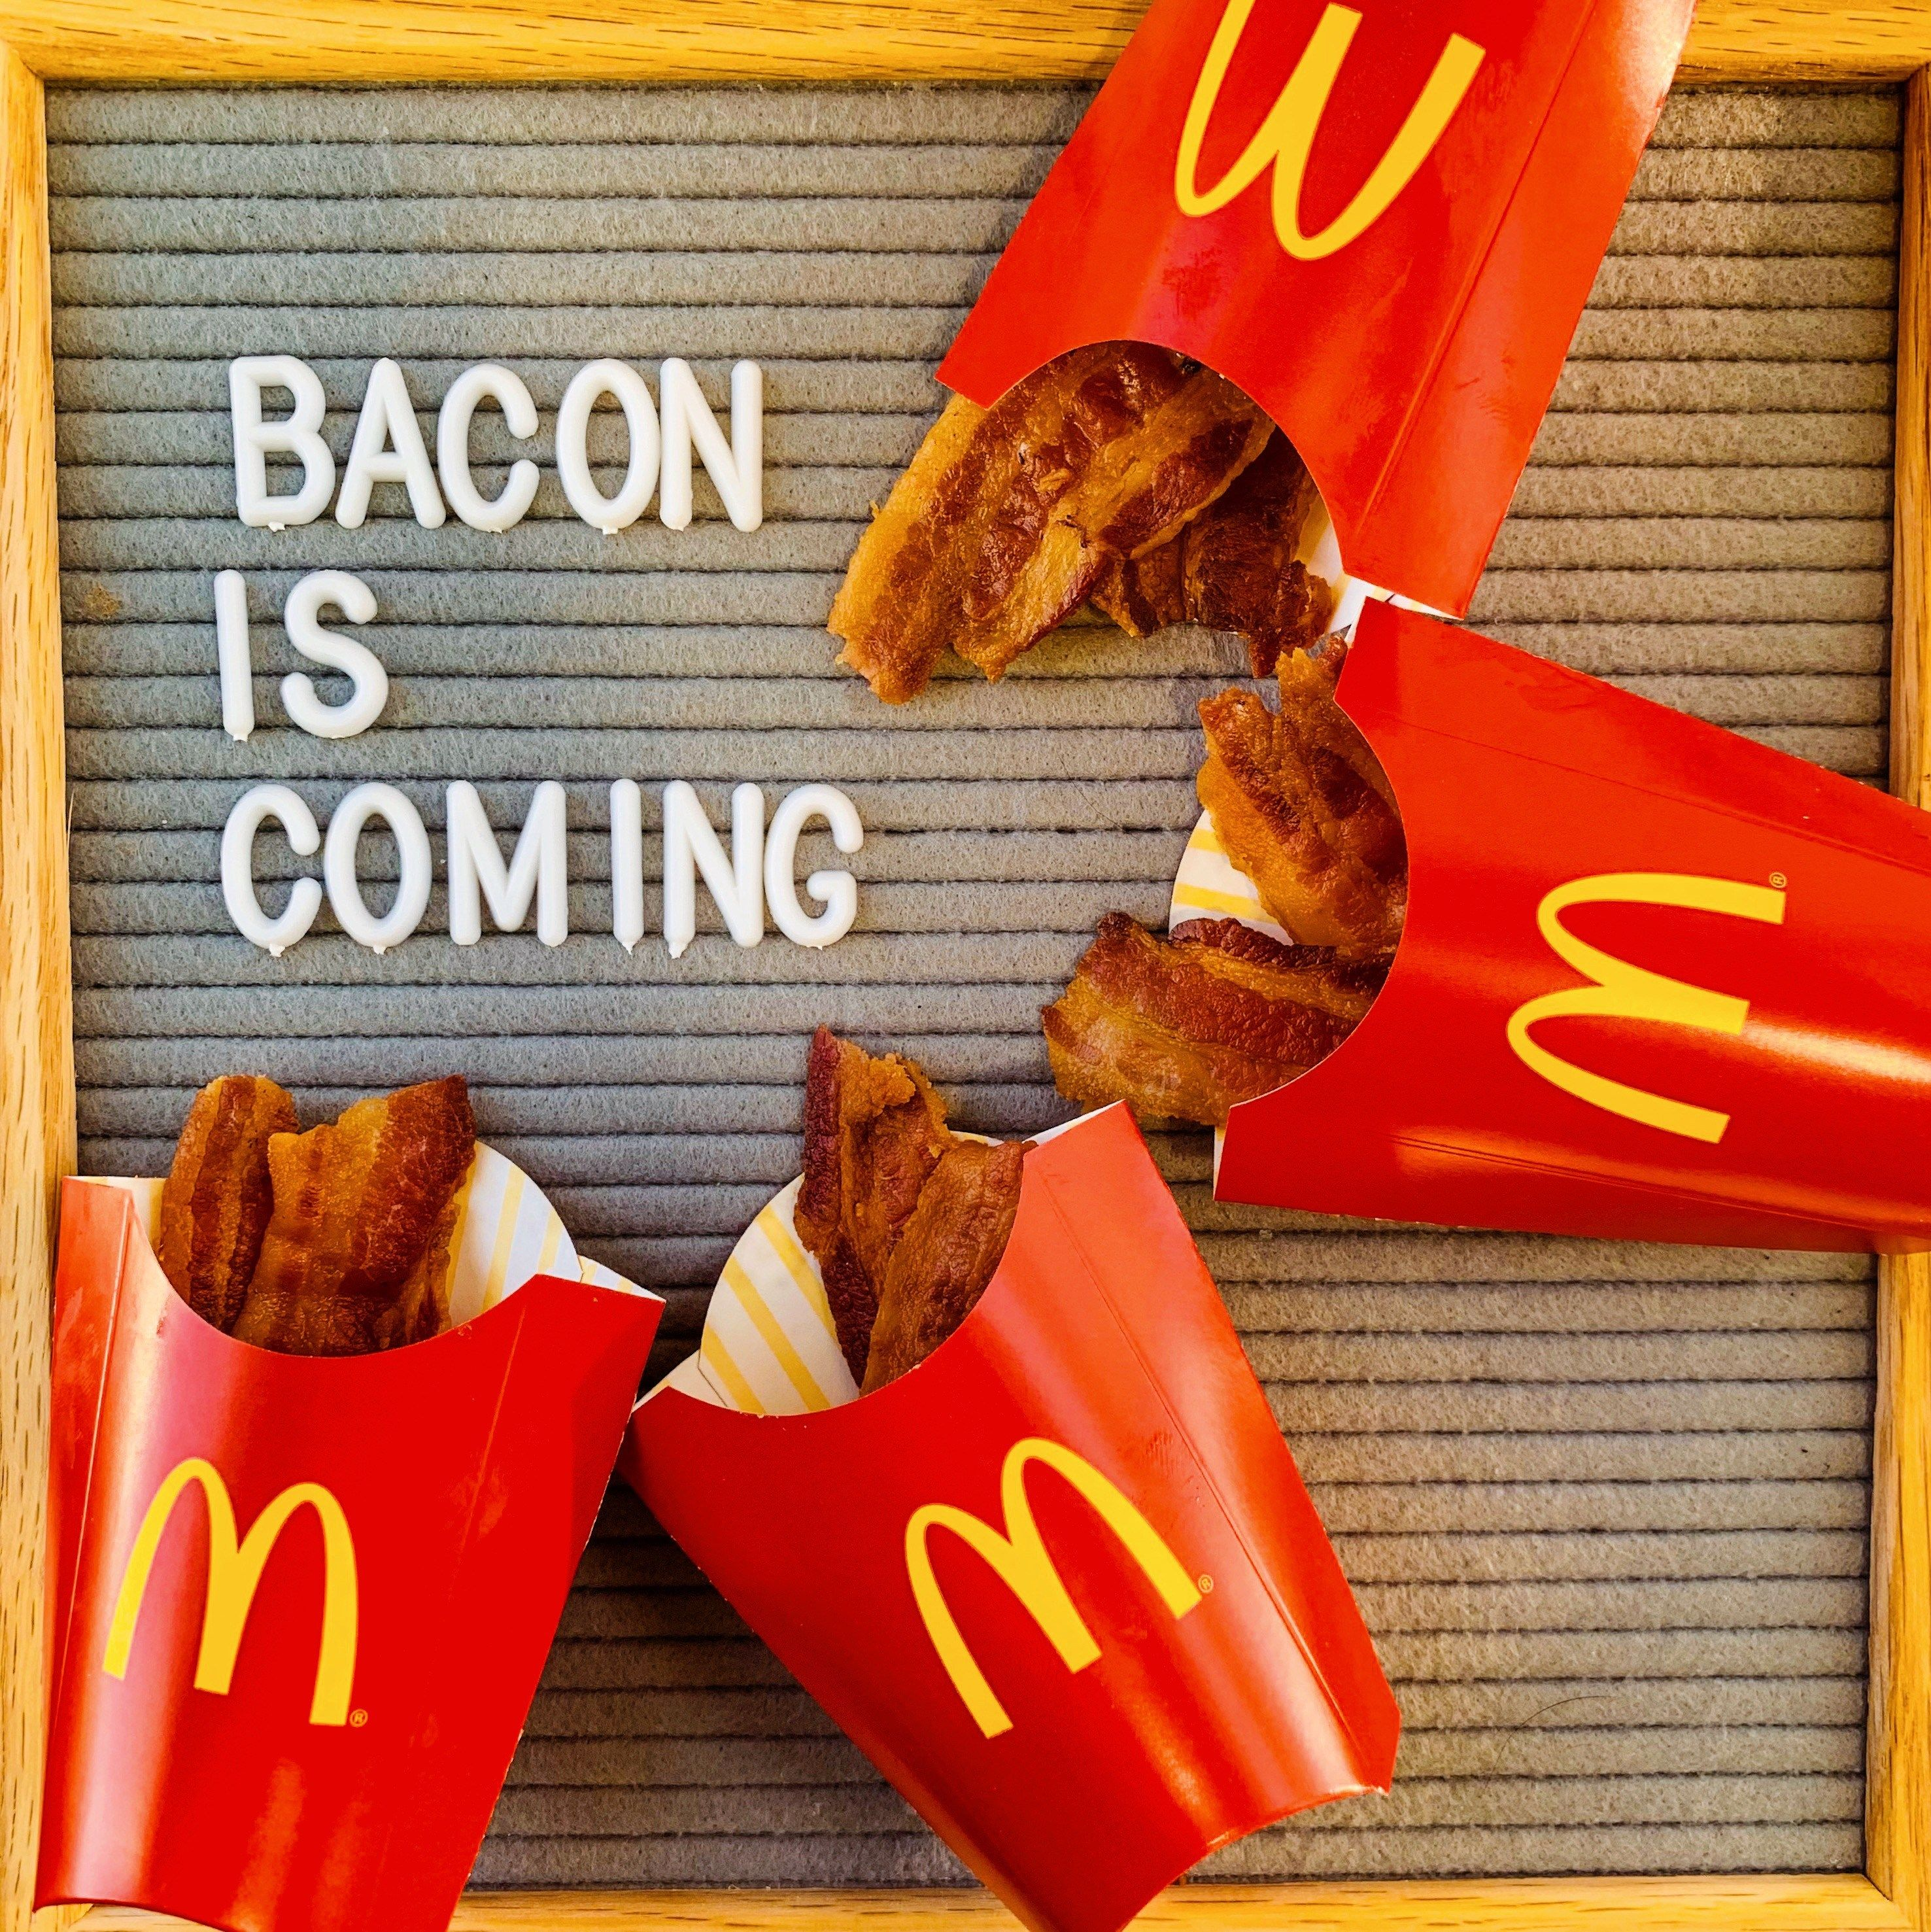 Bacon Is Coming McDonald's Introduces New Bacon Items to